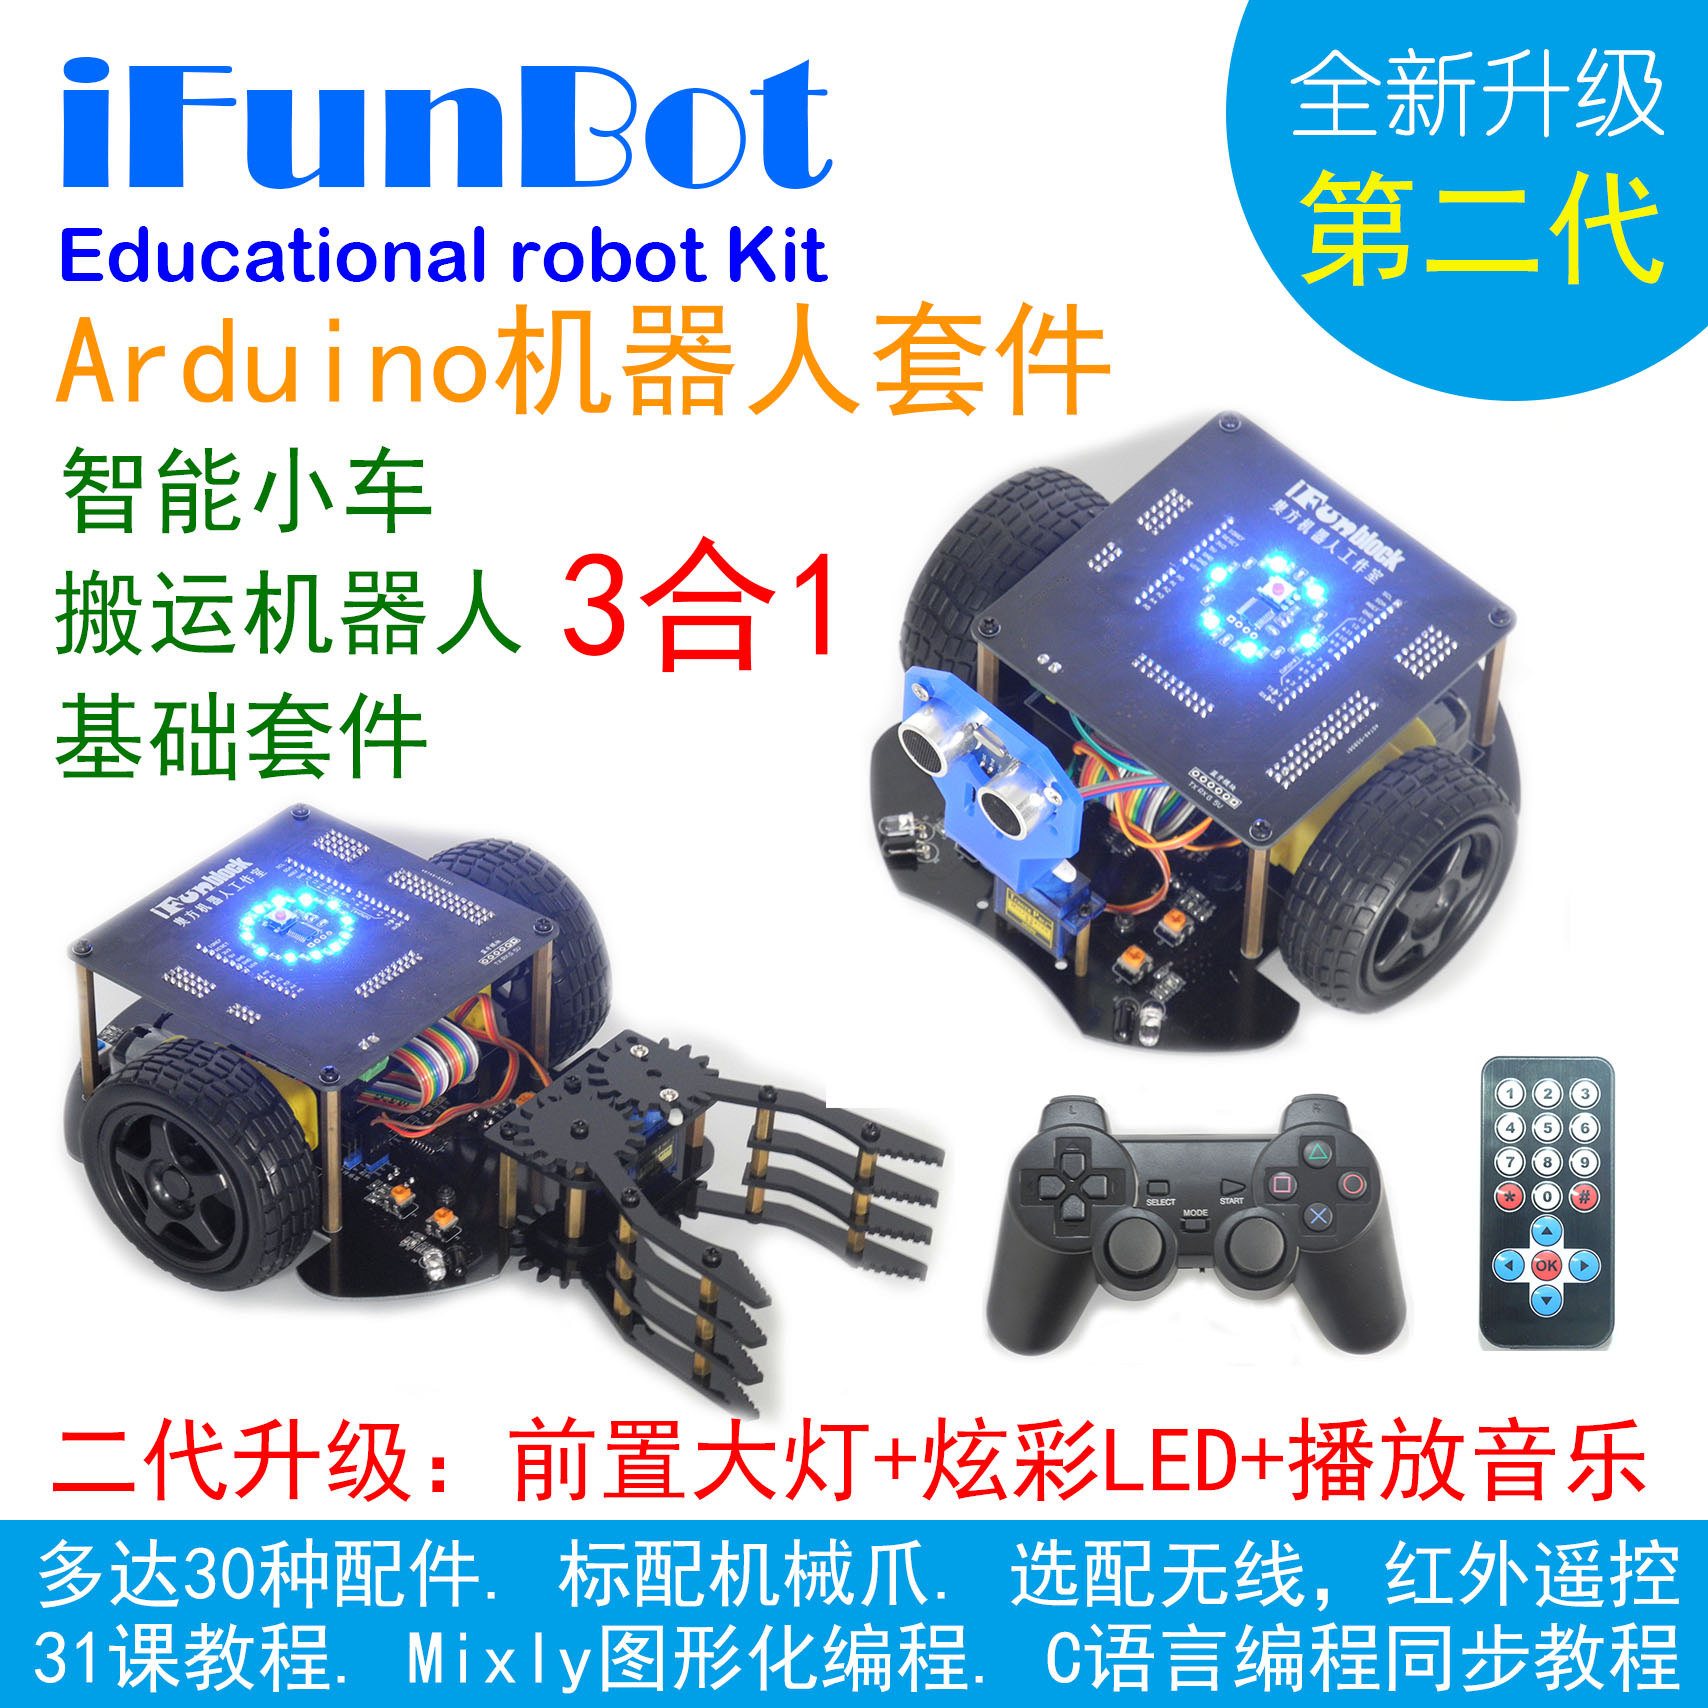 Arduino smart car tracking obstacle avoidance wireless remote control robot  kit graphical programming uno R3